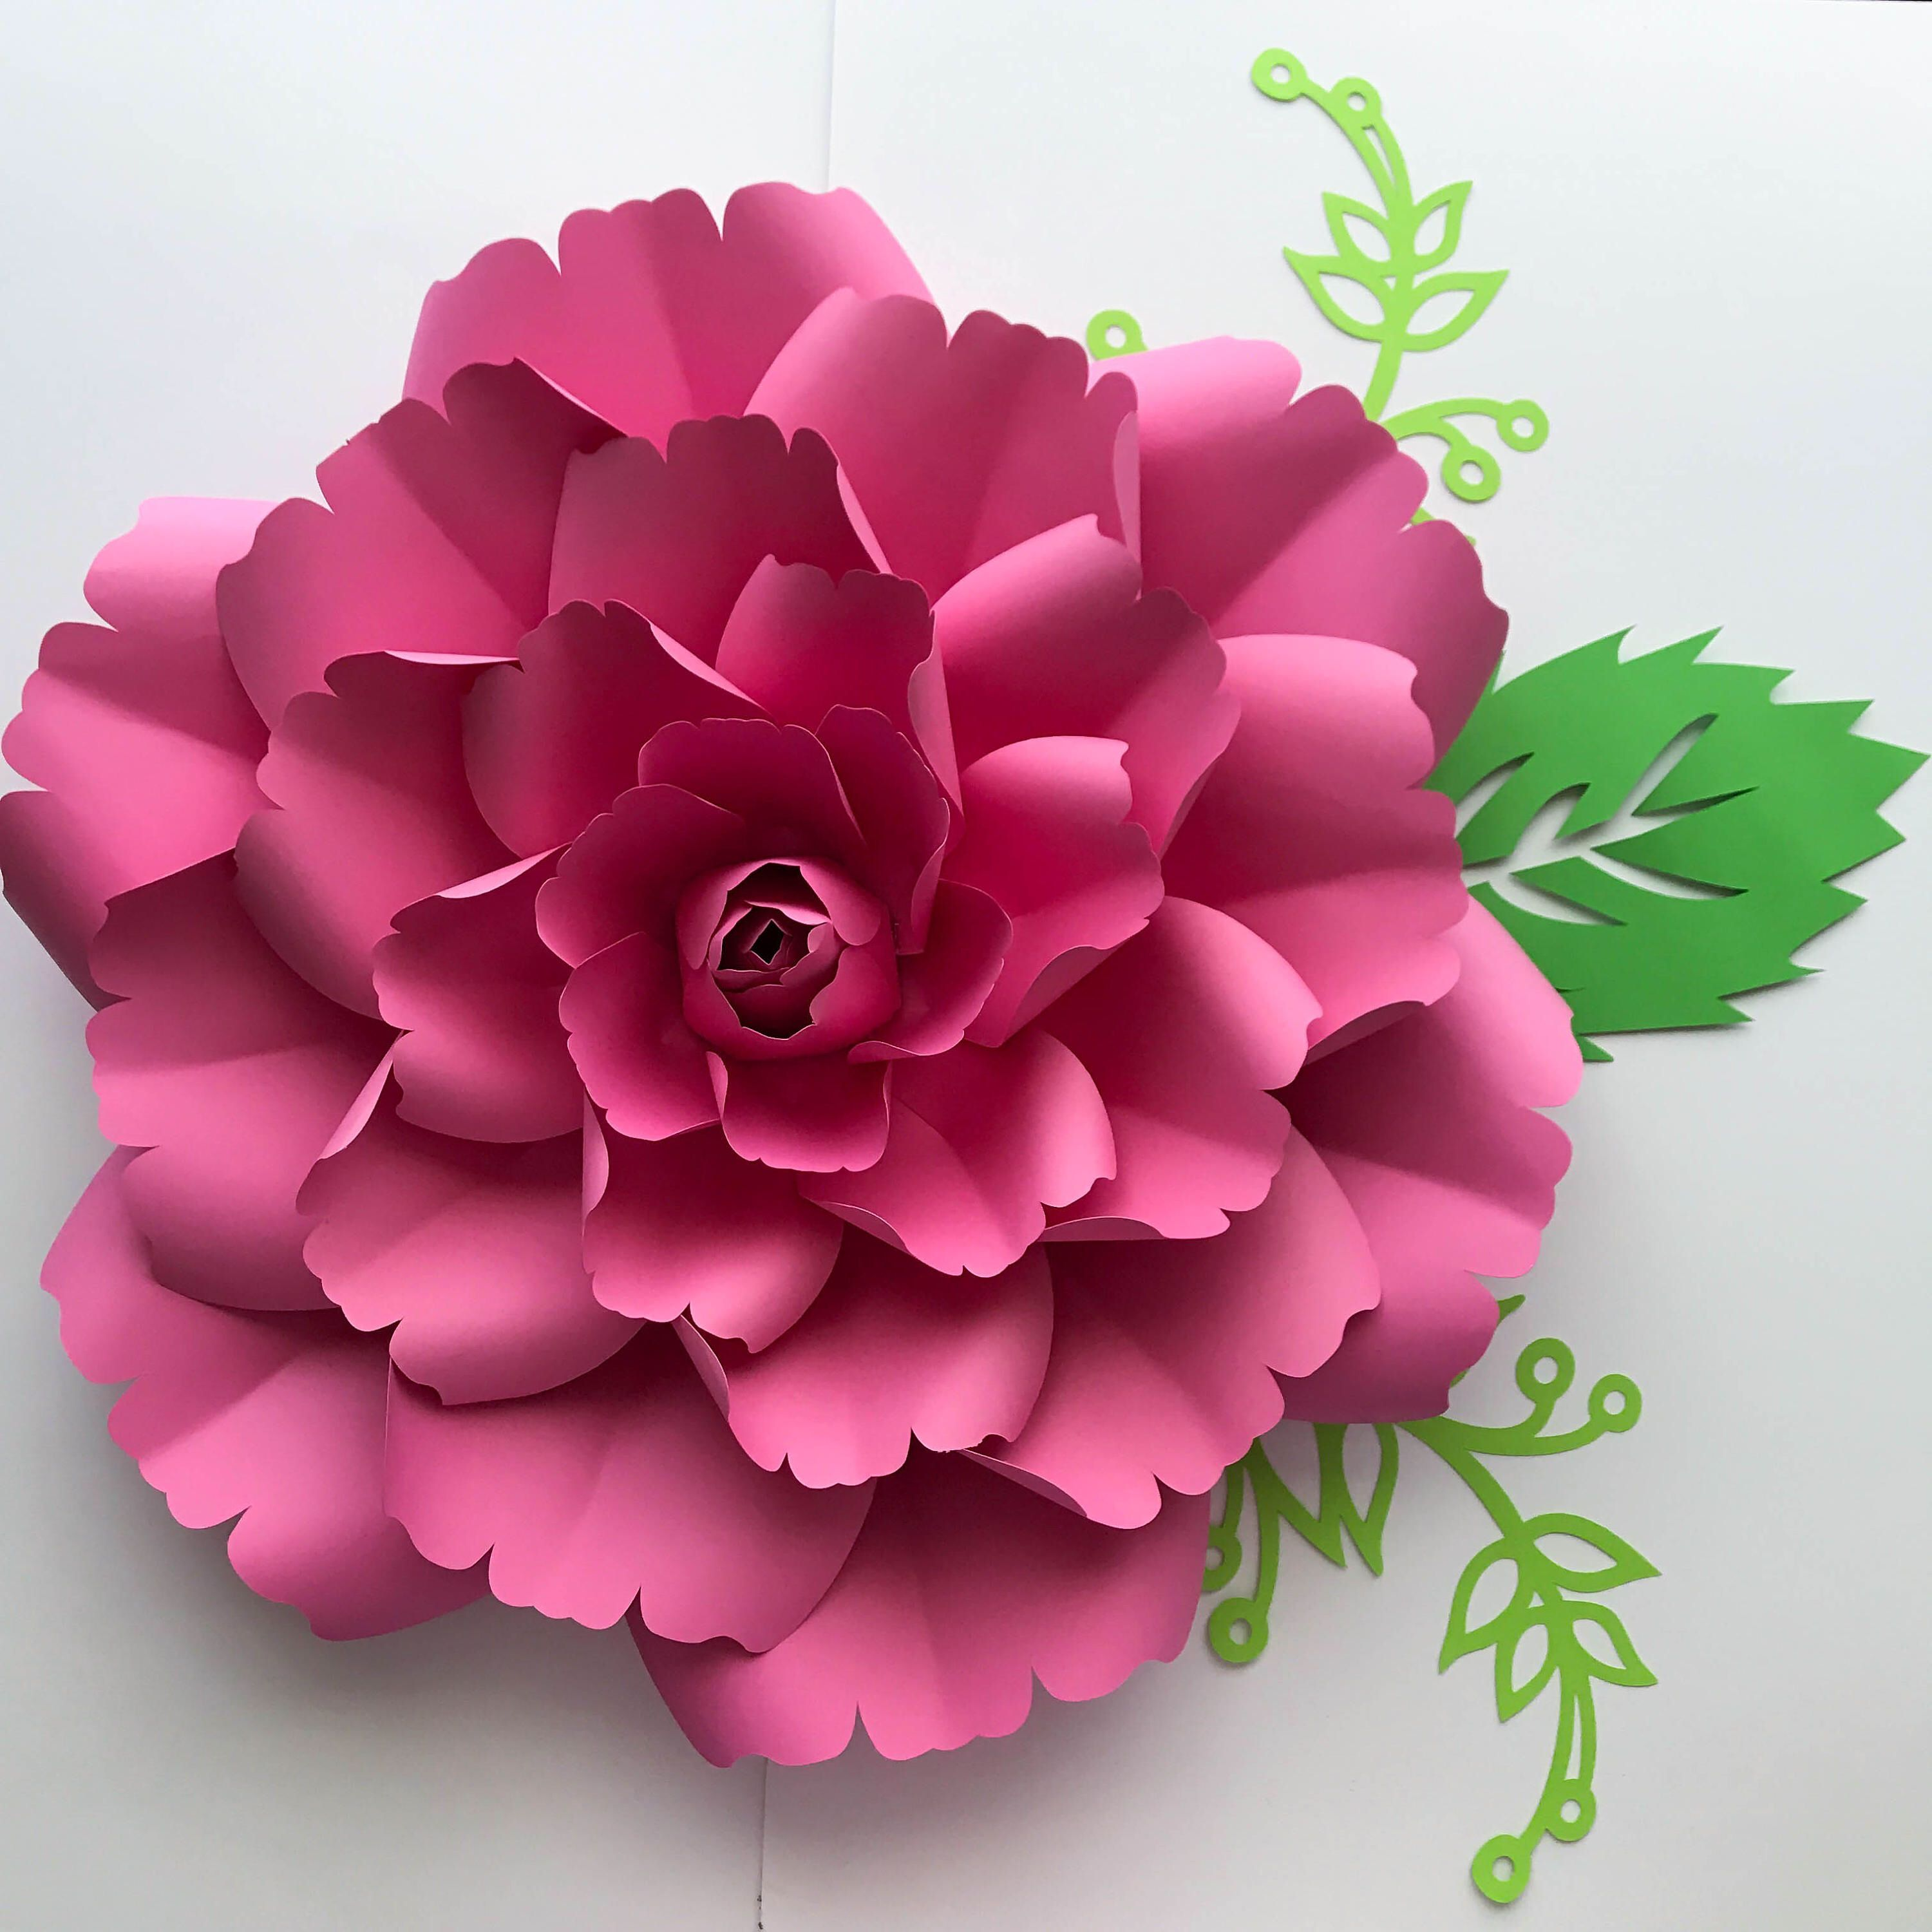 Paper Flowers SVG Petal 137 template with Center